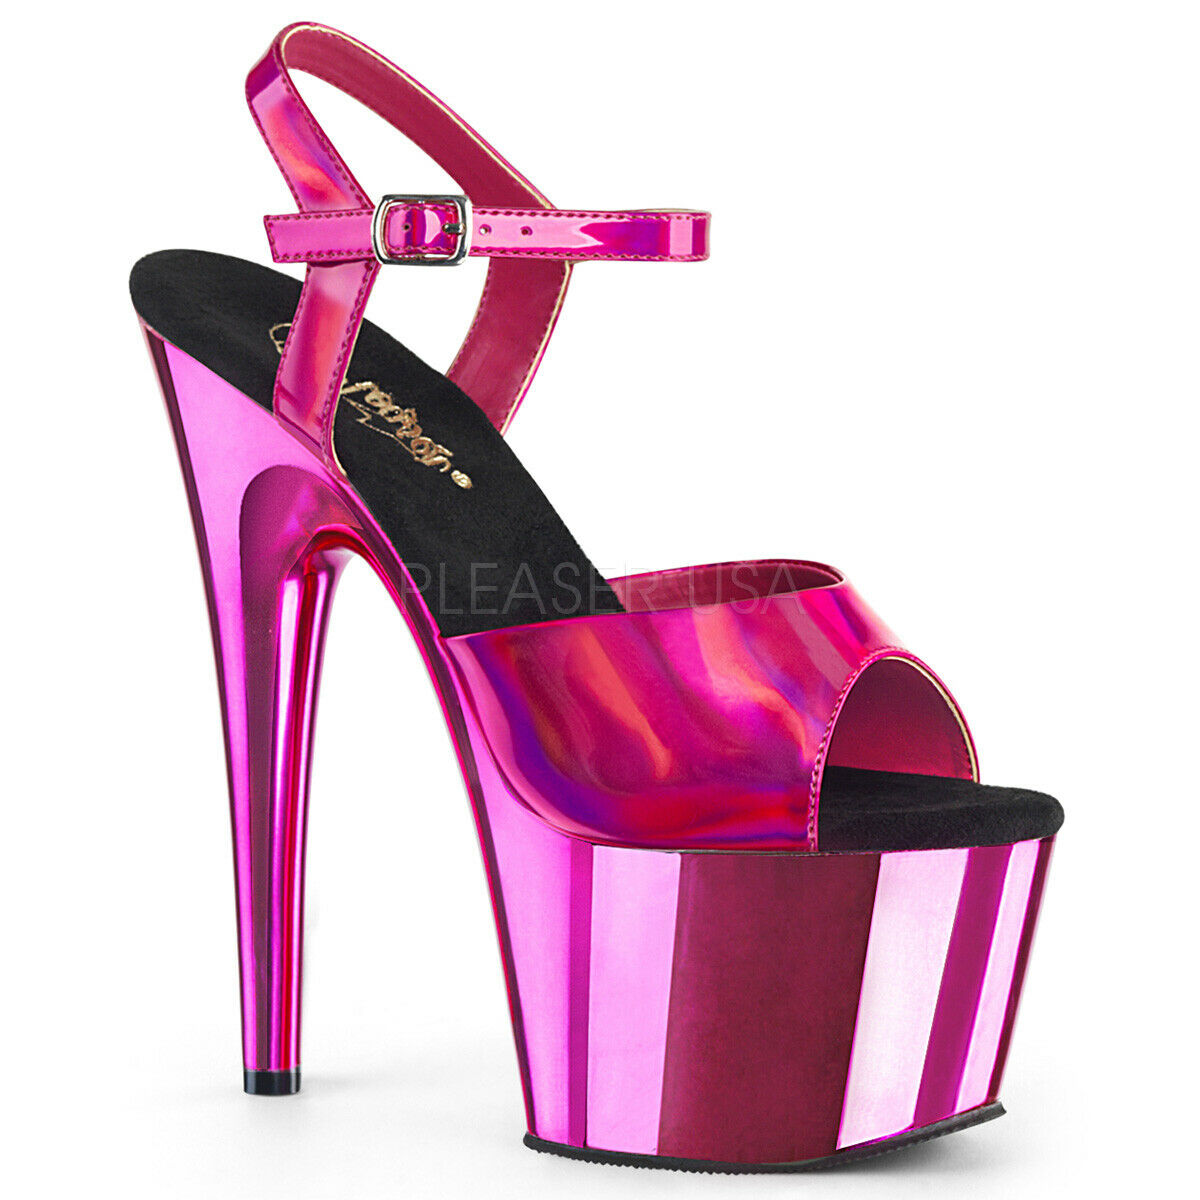 Pleaser Adore-709HGCH Hot Pink Hologram Chrome Plated Ankle Strap Sandal